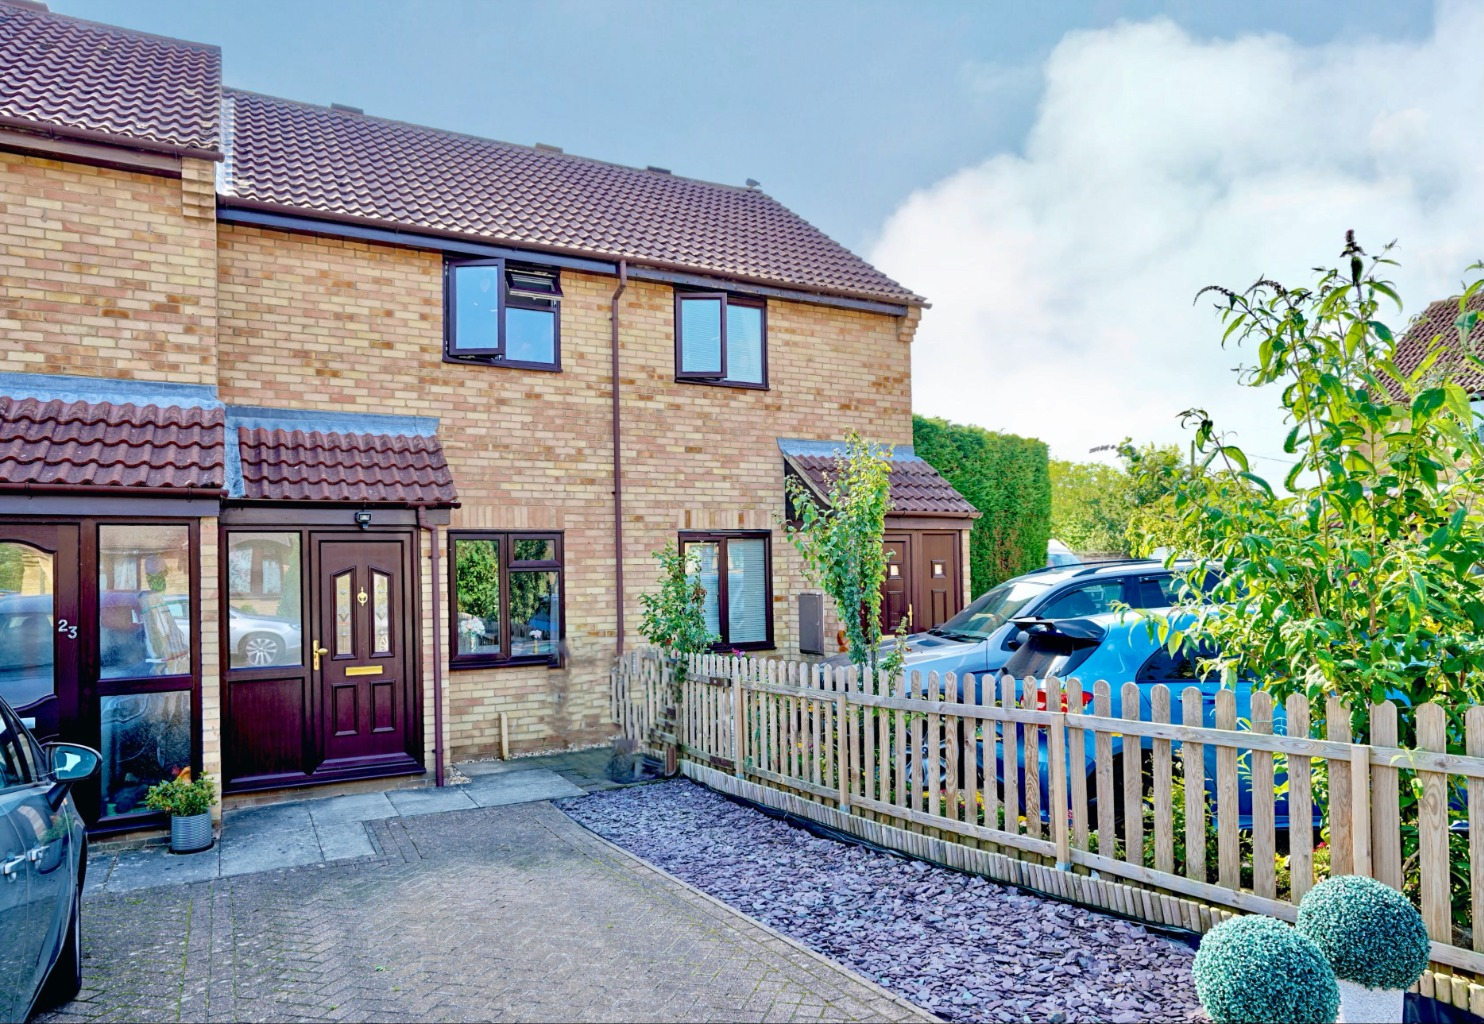 2 bed  for sale in Swallowfield, Bedford, MK44